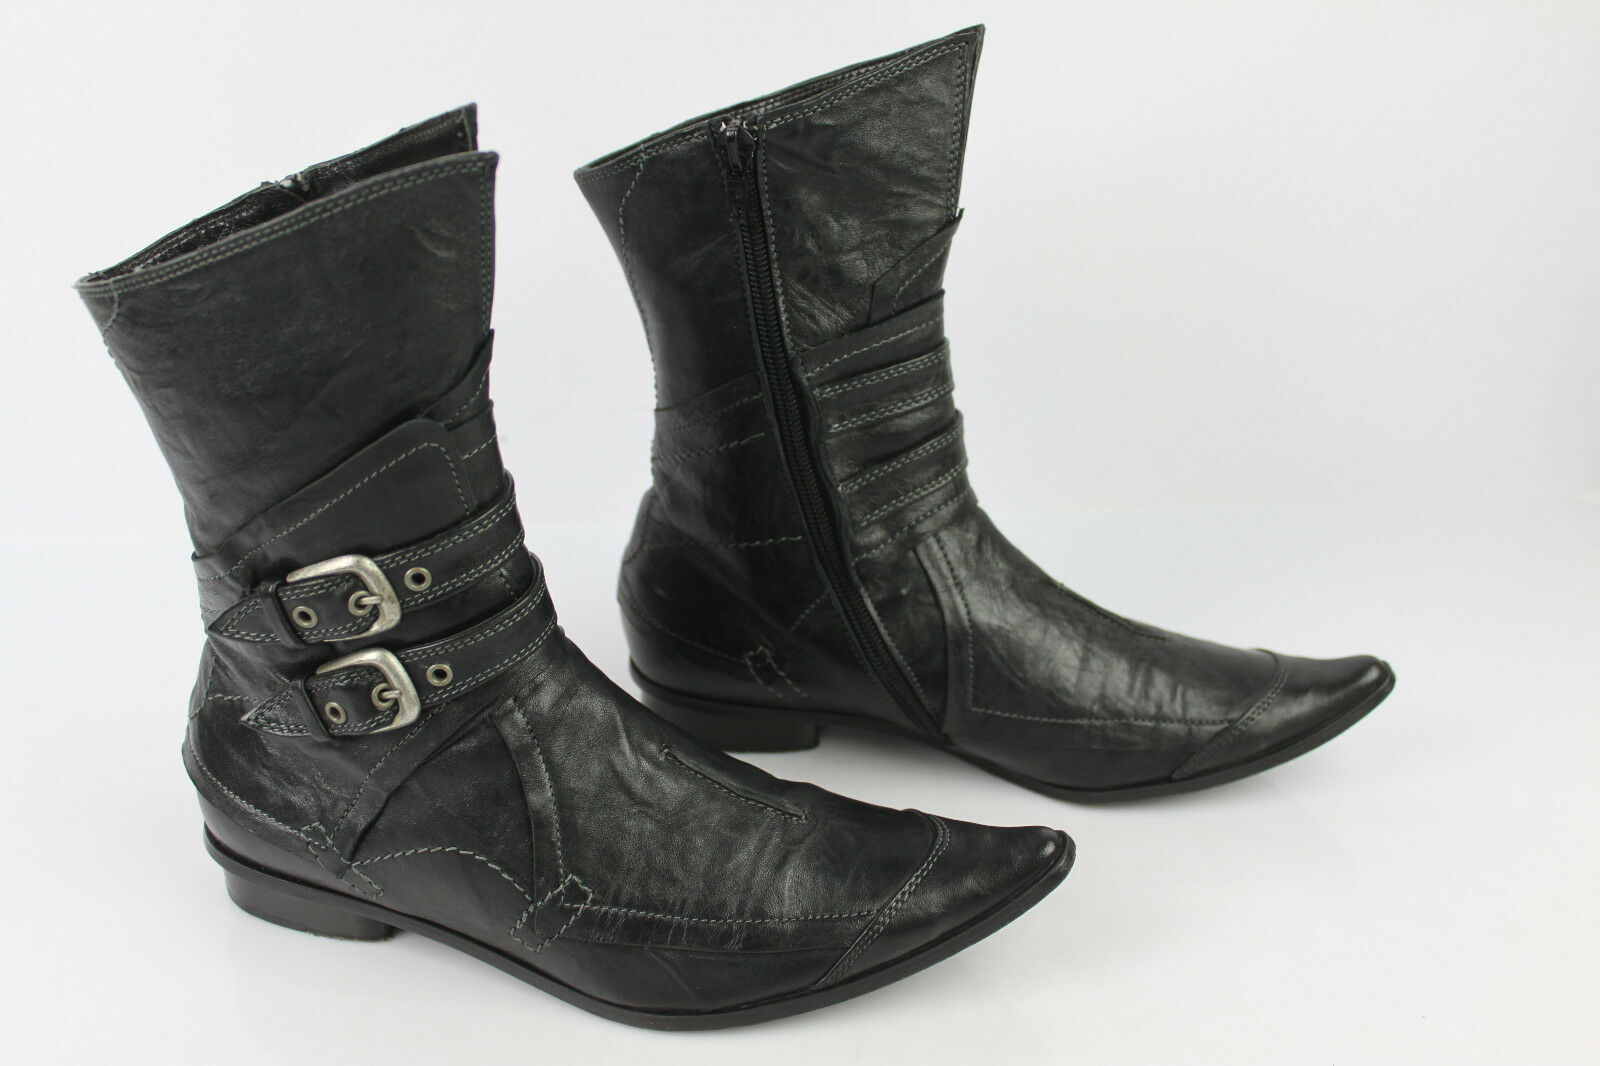 Boots REGARD All Leather Black T 36 VERY GOOD CONDITION